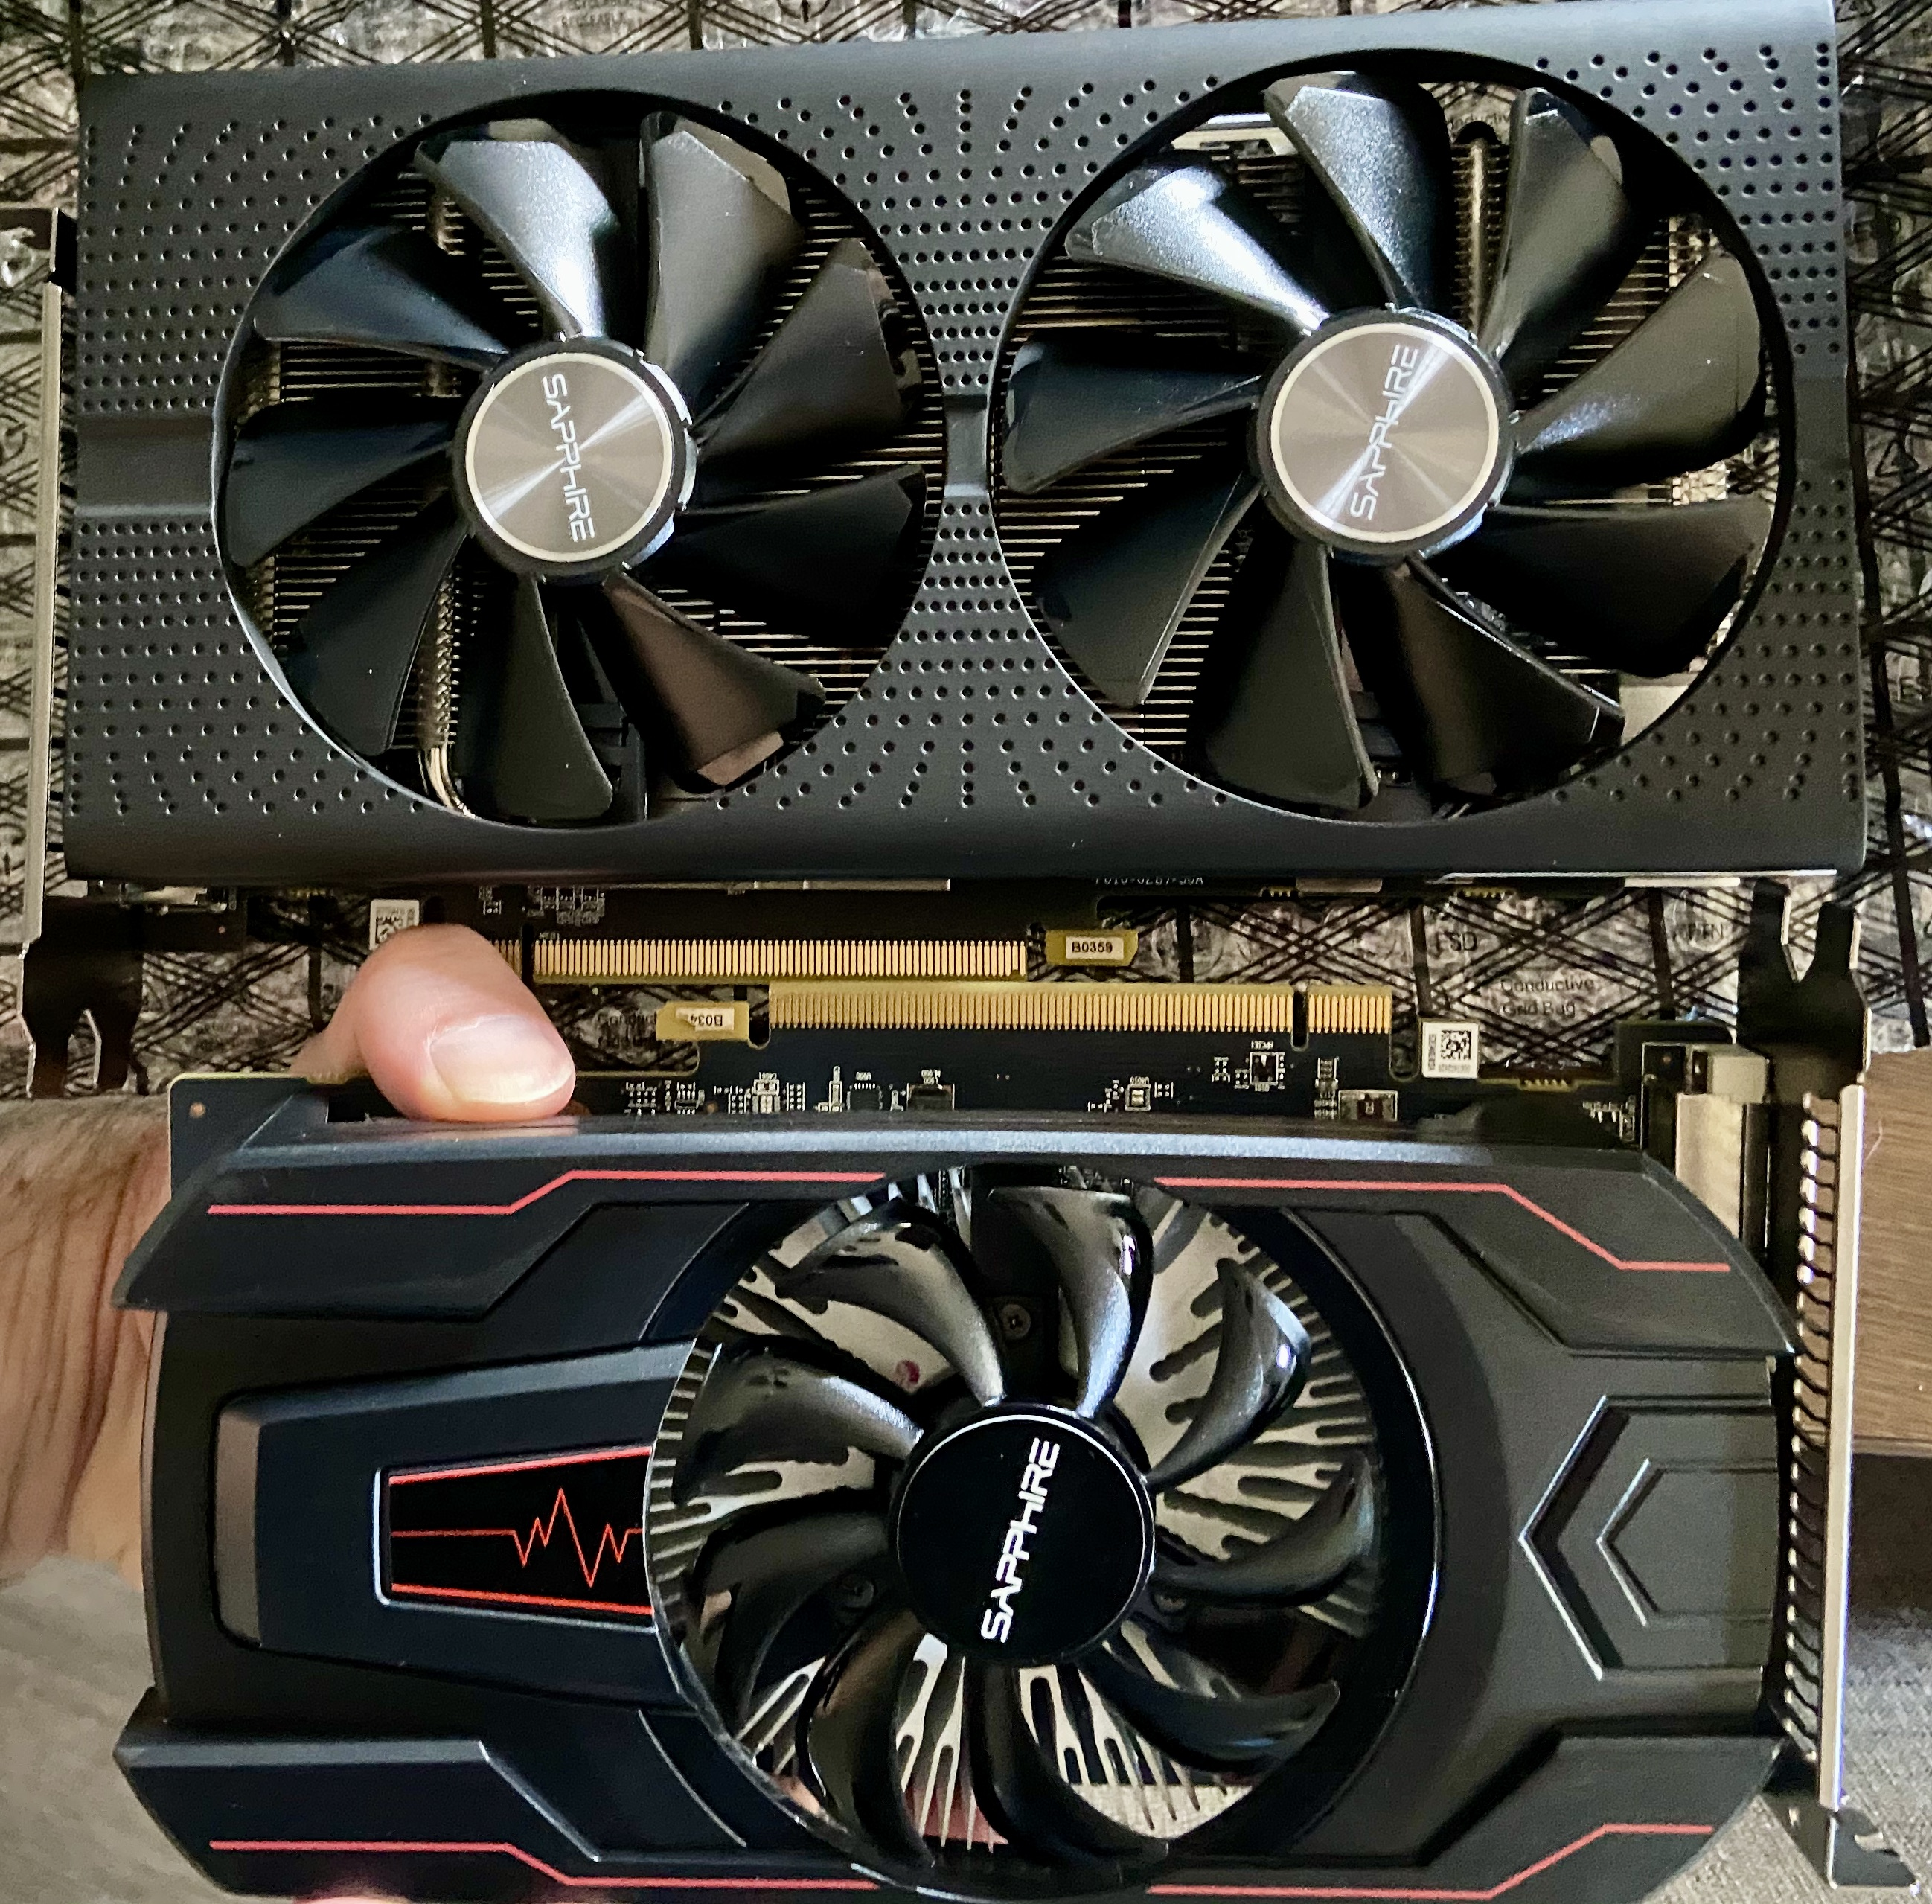 The rx560 and 580 side-by-side